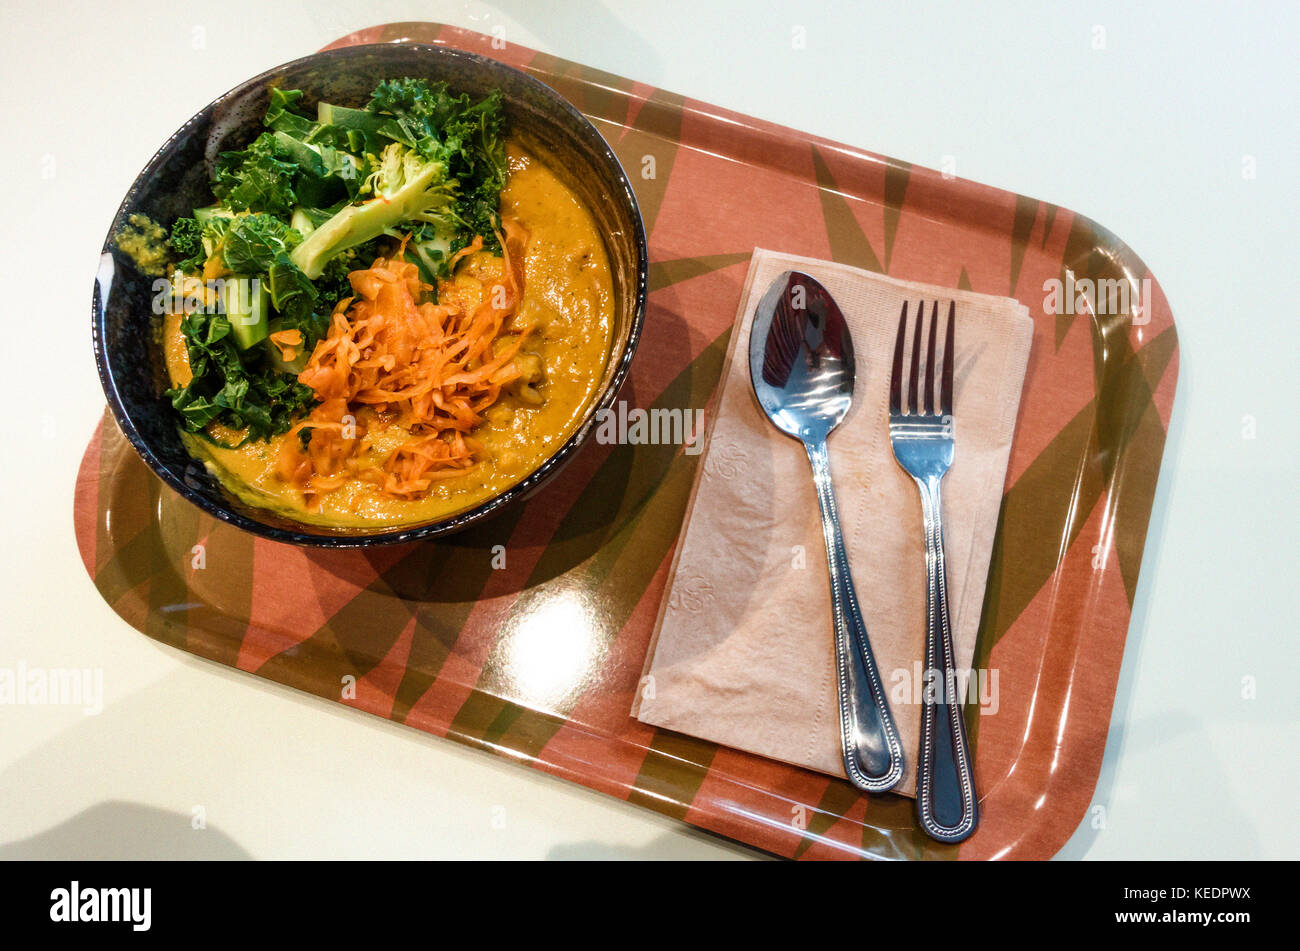 Tibetan mama, with coconut curry peanut butter sauce served over brown rice, with steamed vegetables and kimchi - Stock Image